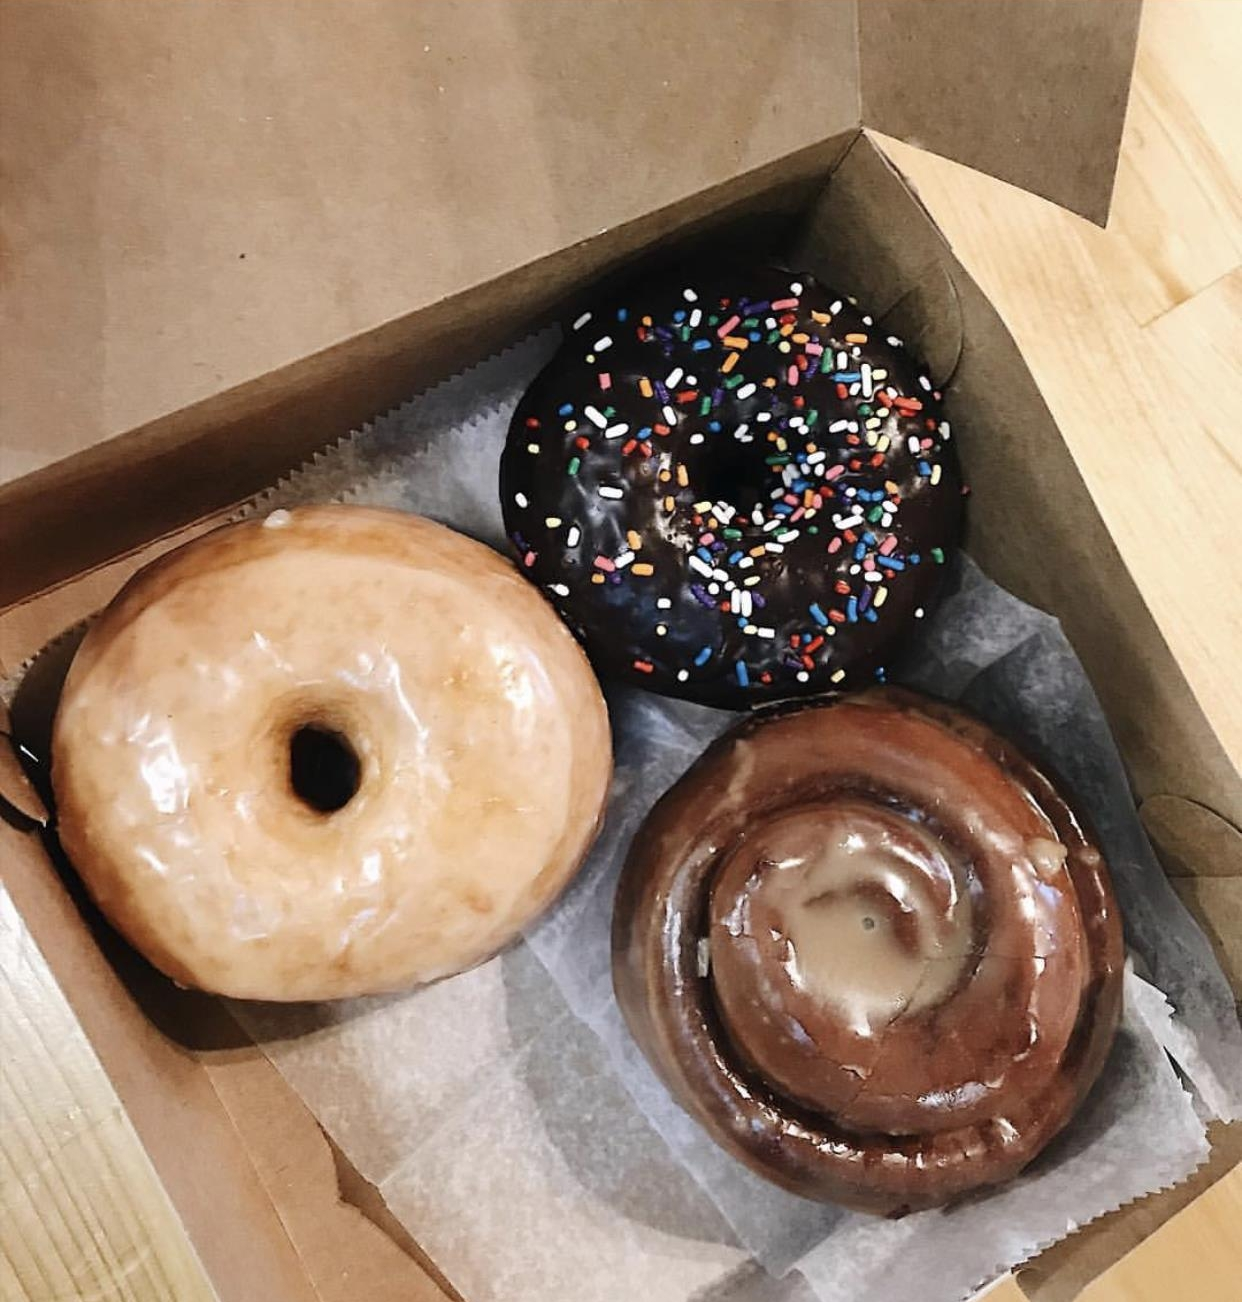 Destination Donuts is worth the stop!